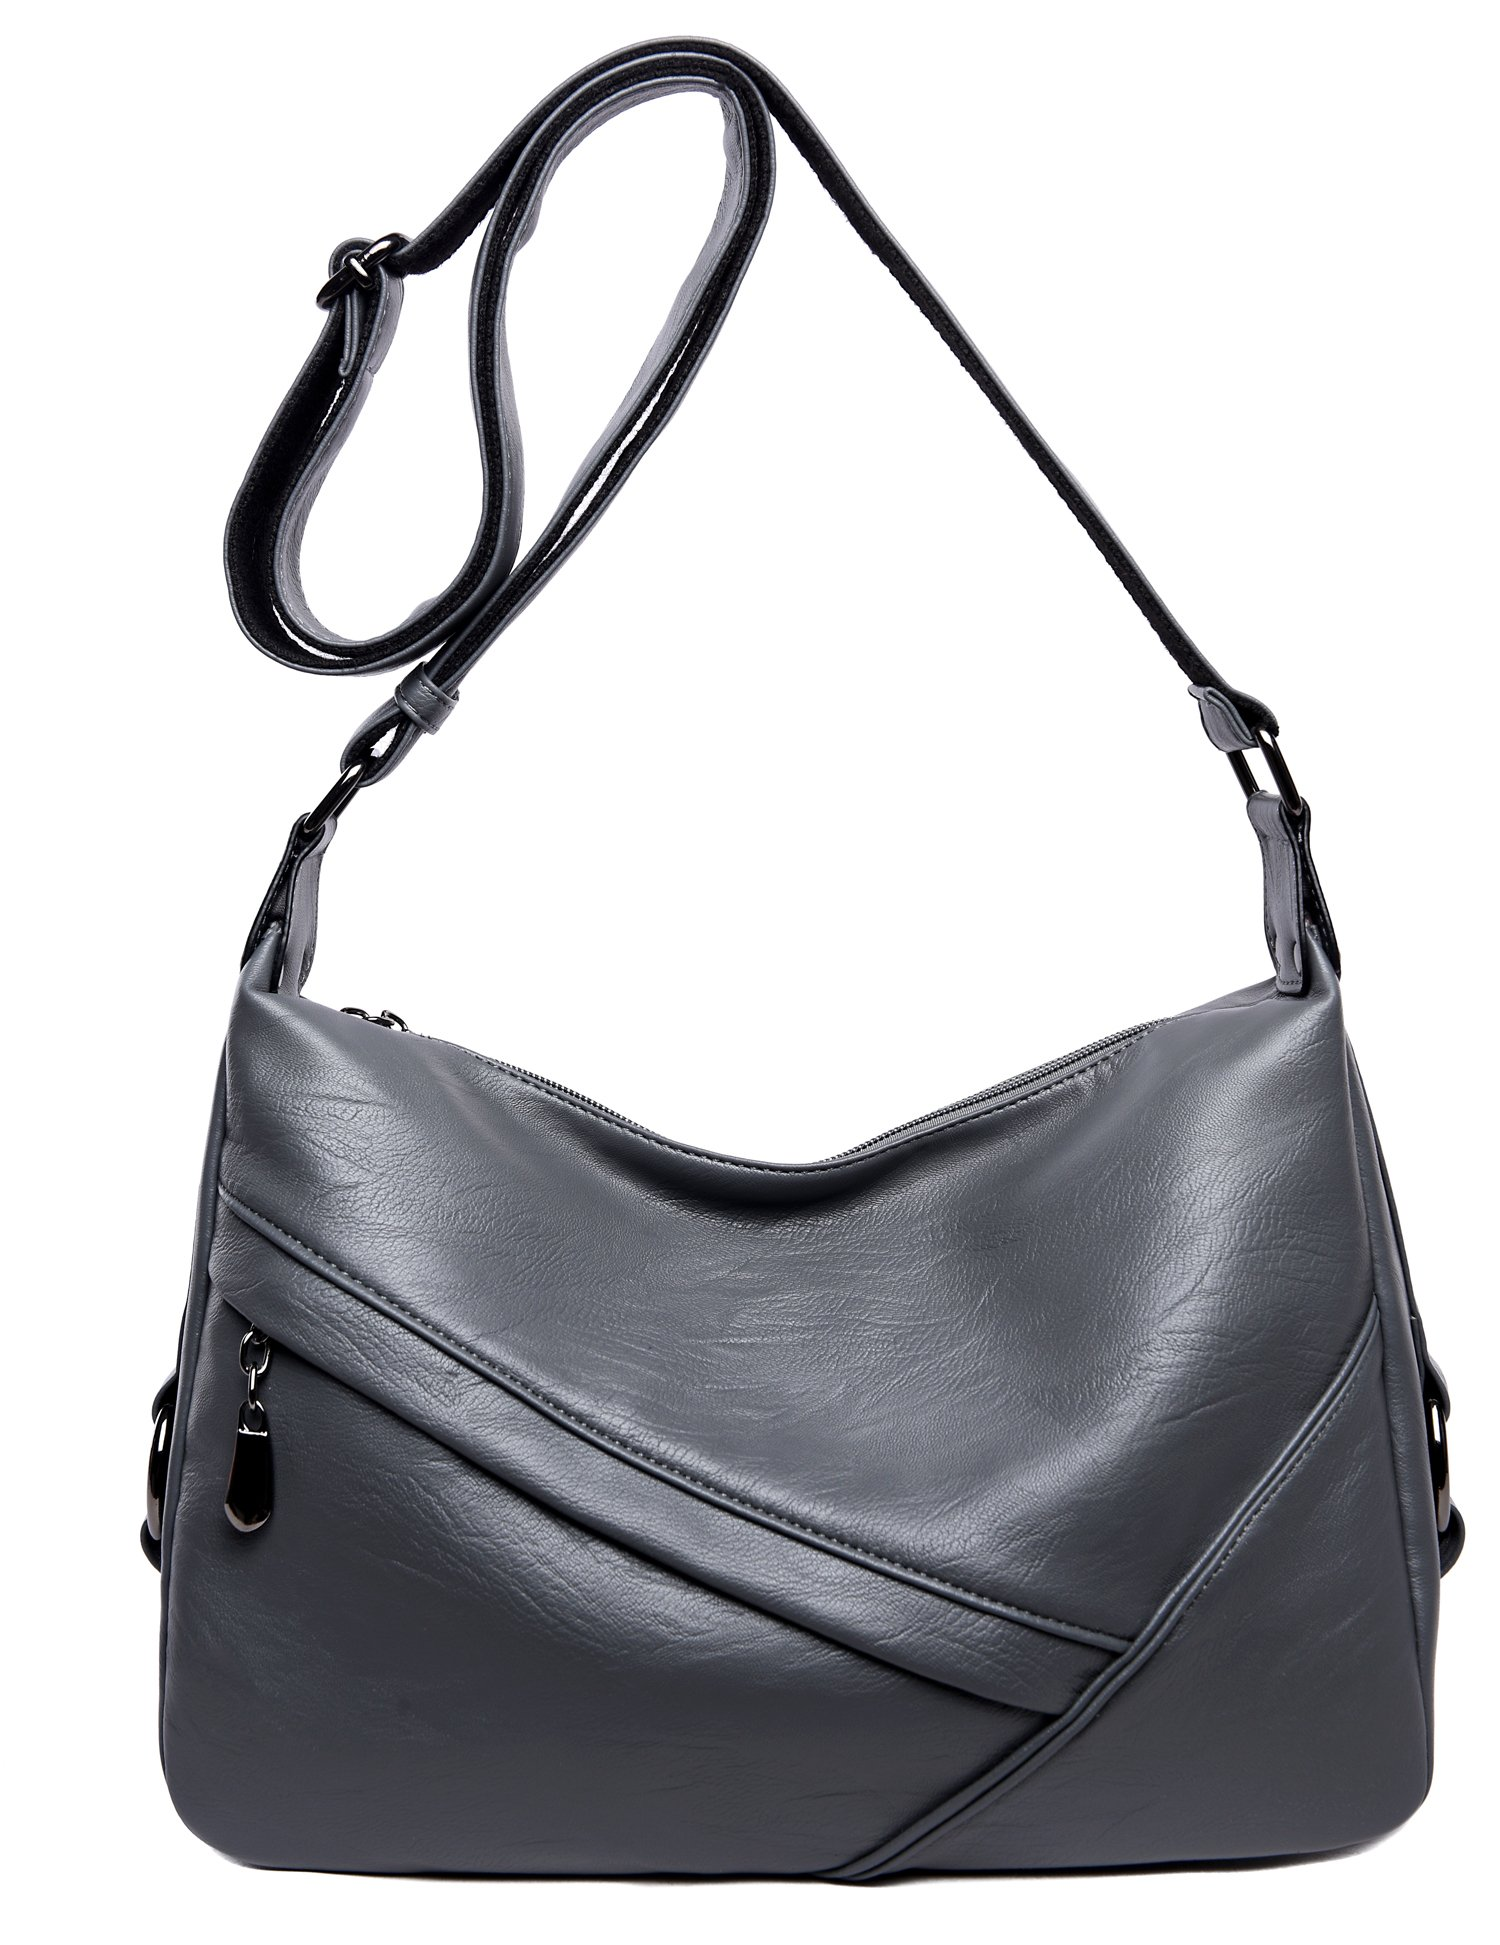 Women's Retro Sling Shoulder Bag from Covelin, Leather Crossbody Tote Handbag Grey